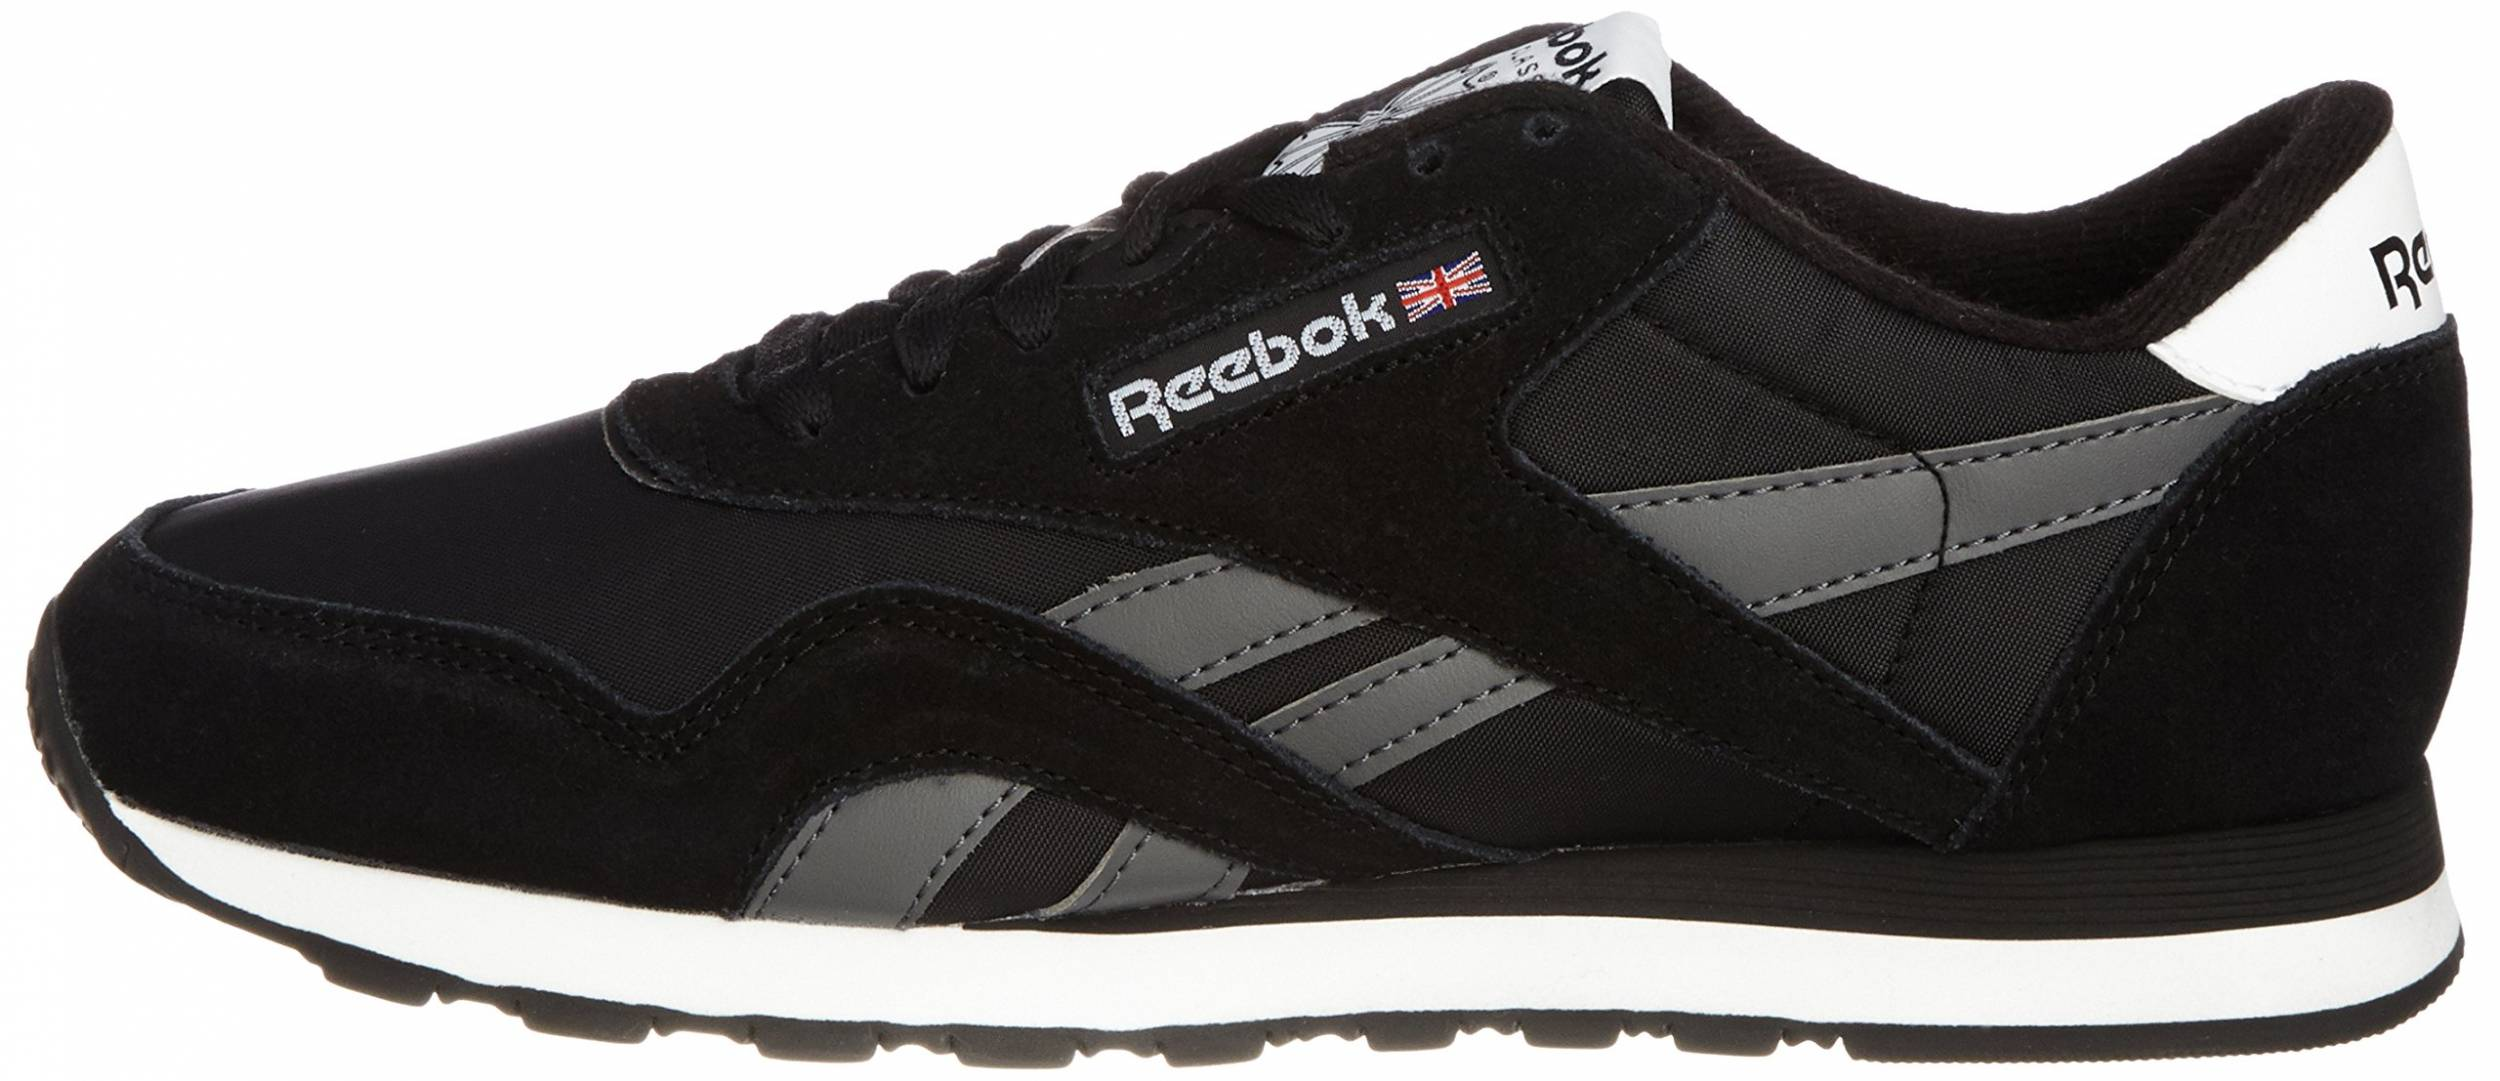 Del Sur Pensamiento perfume  14 Reasons to/NOT to Buy Reebok Classic Nylon R13 (Jan 2021) | RunRepeat